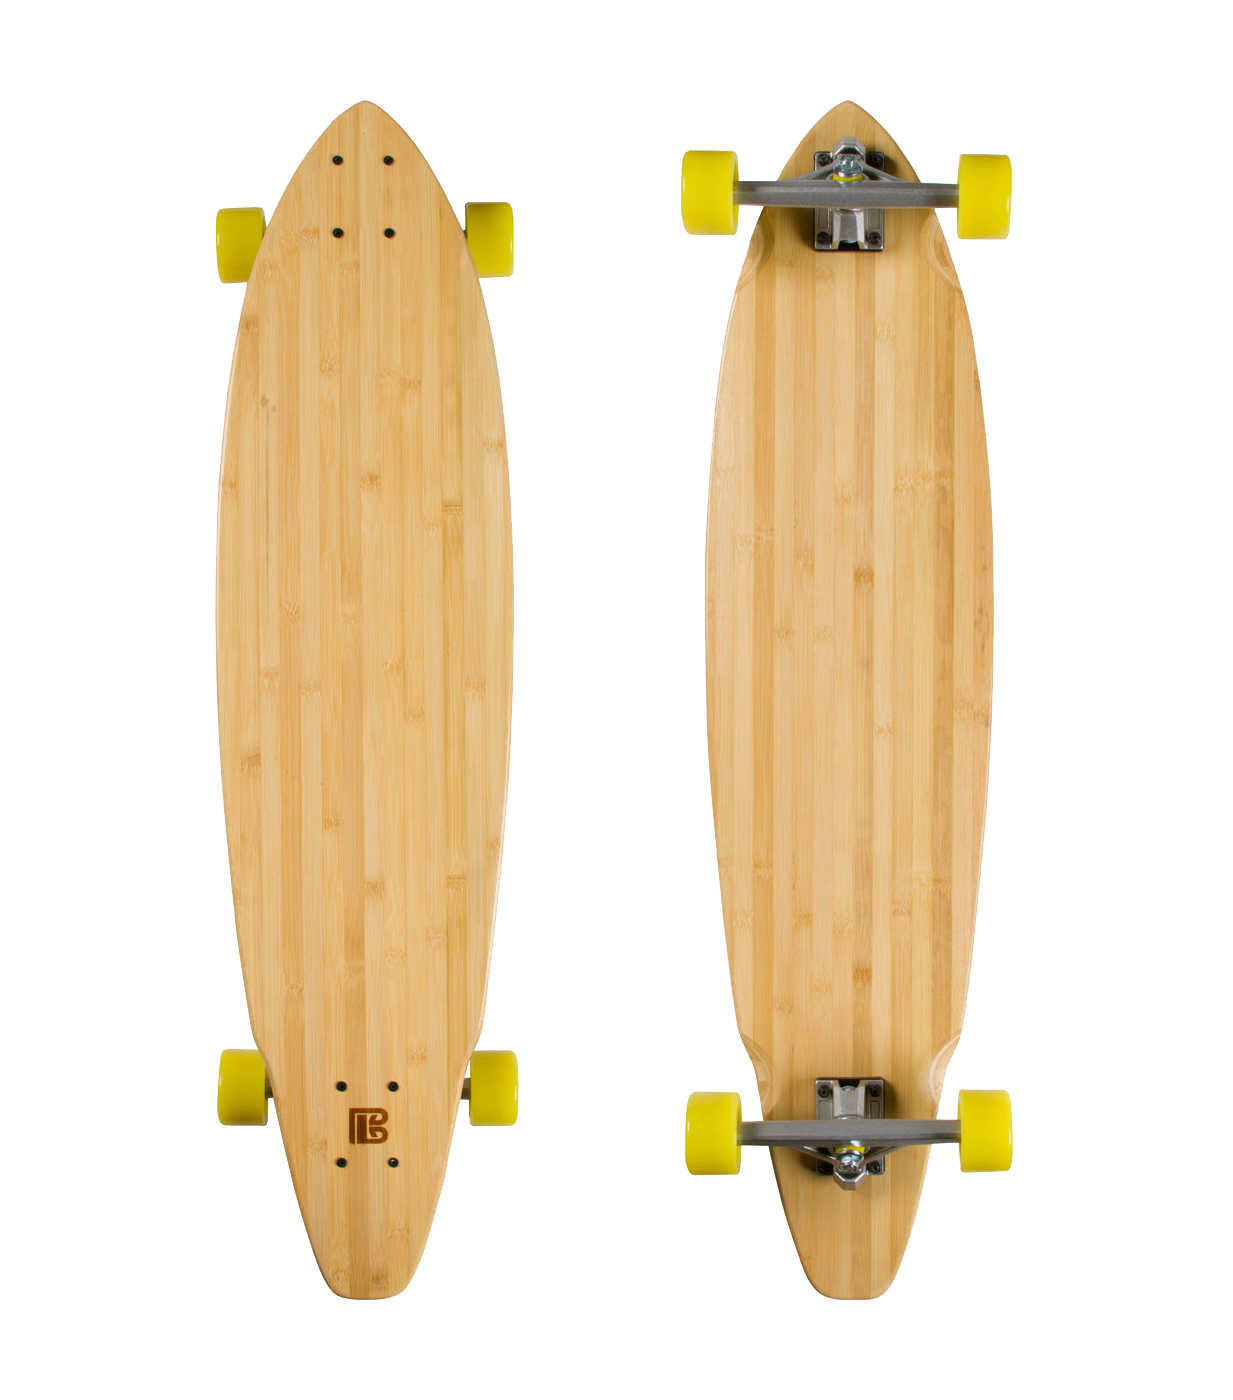 Chaac (North) - Bat Tail Longboard